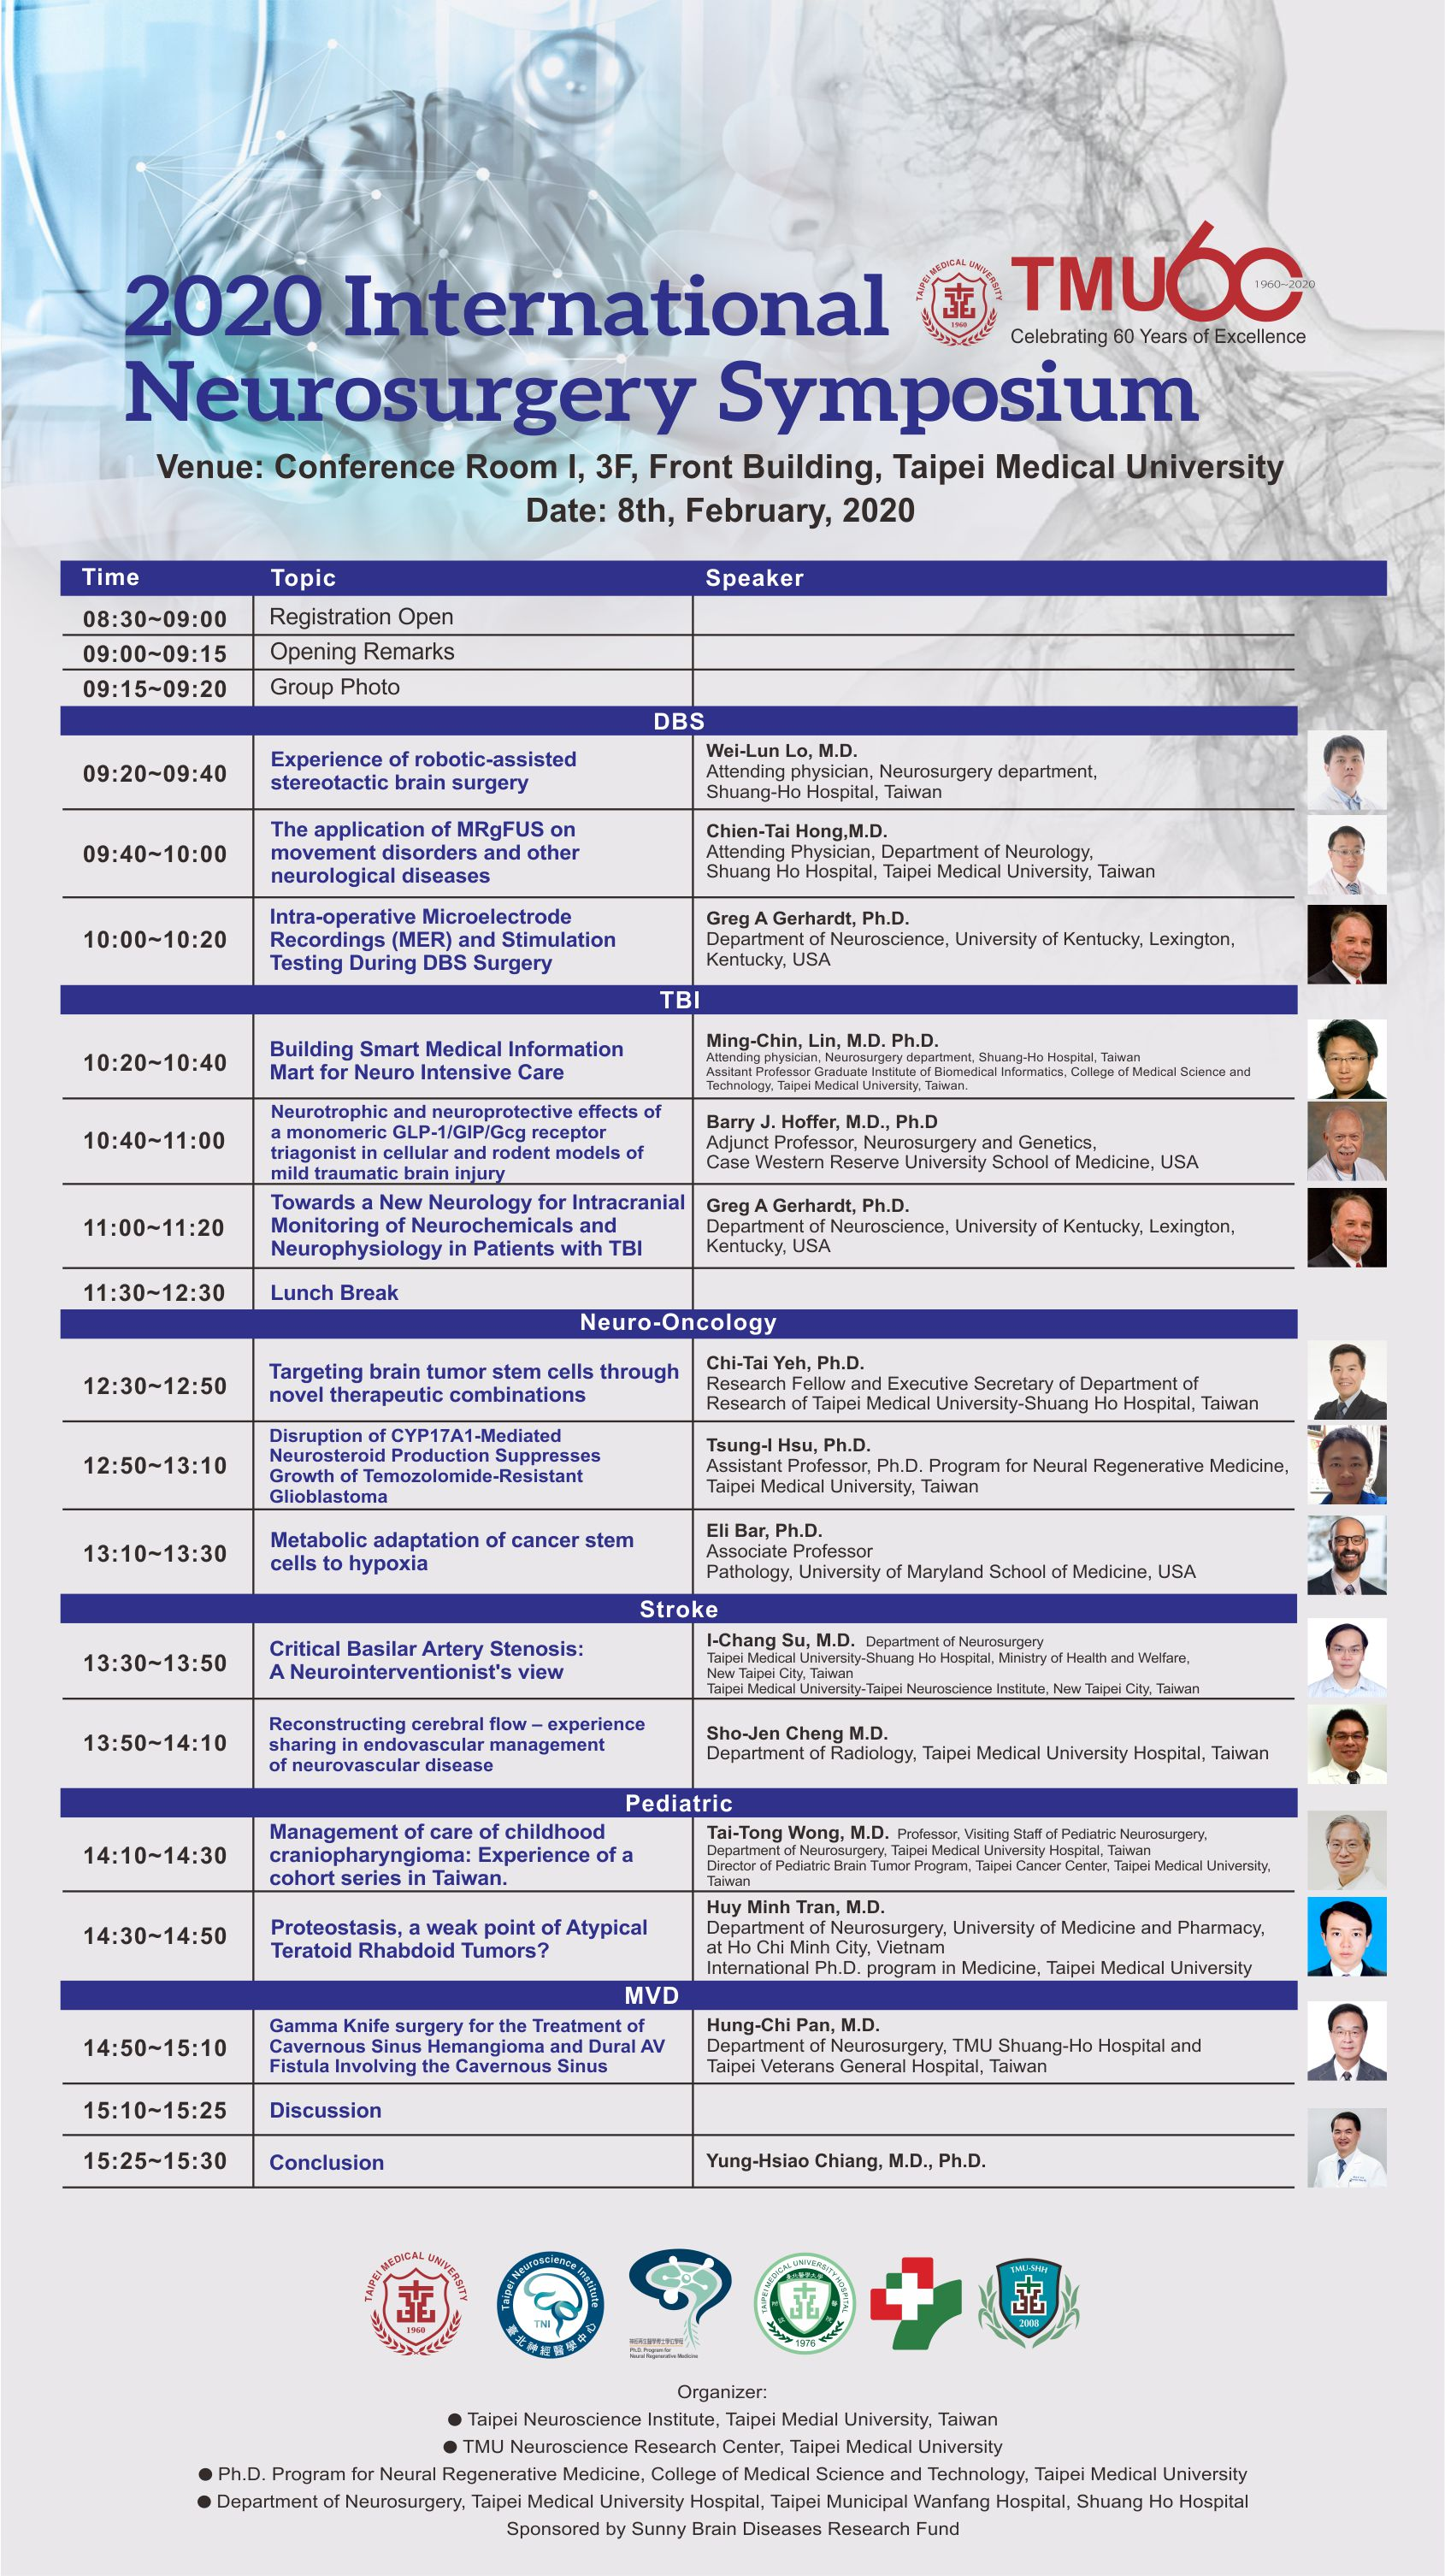 2020 International Neurosurgery Symposium